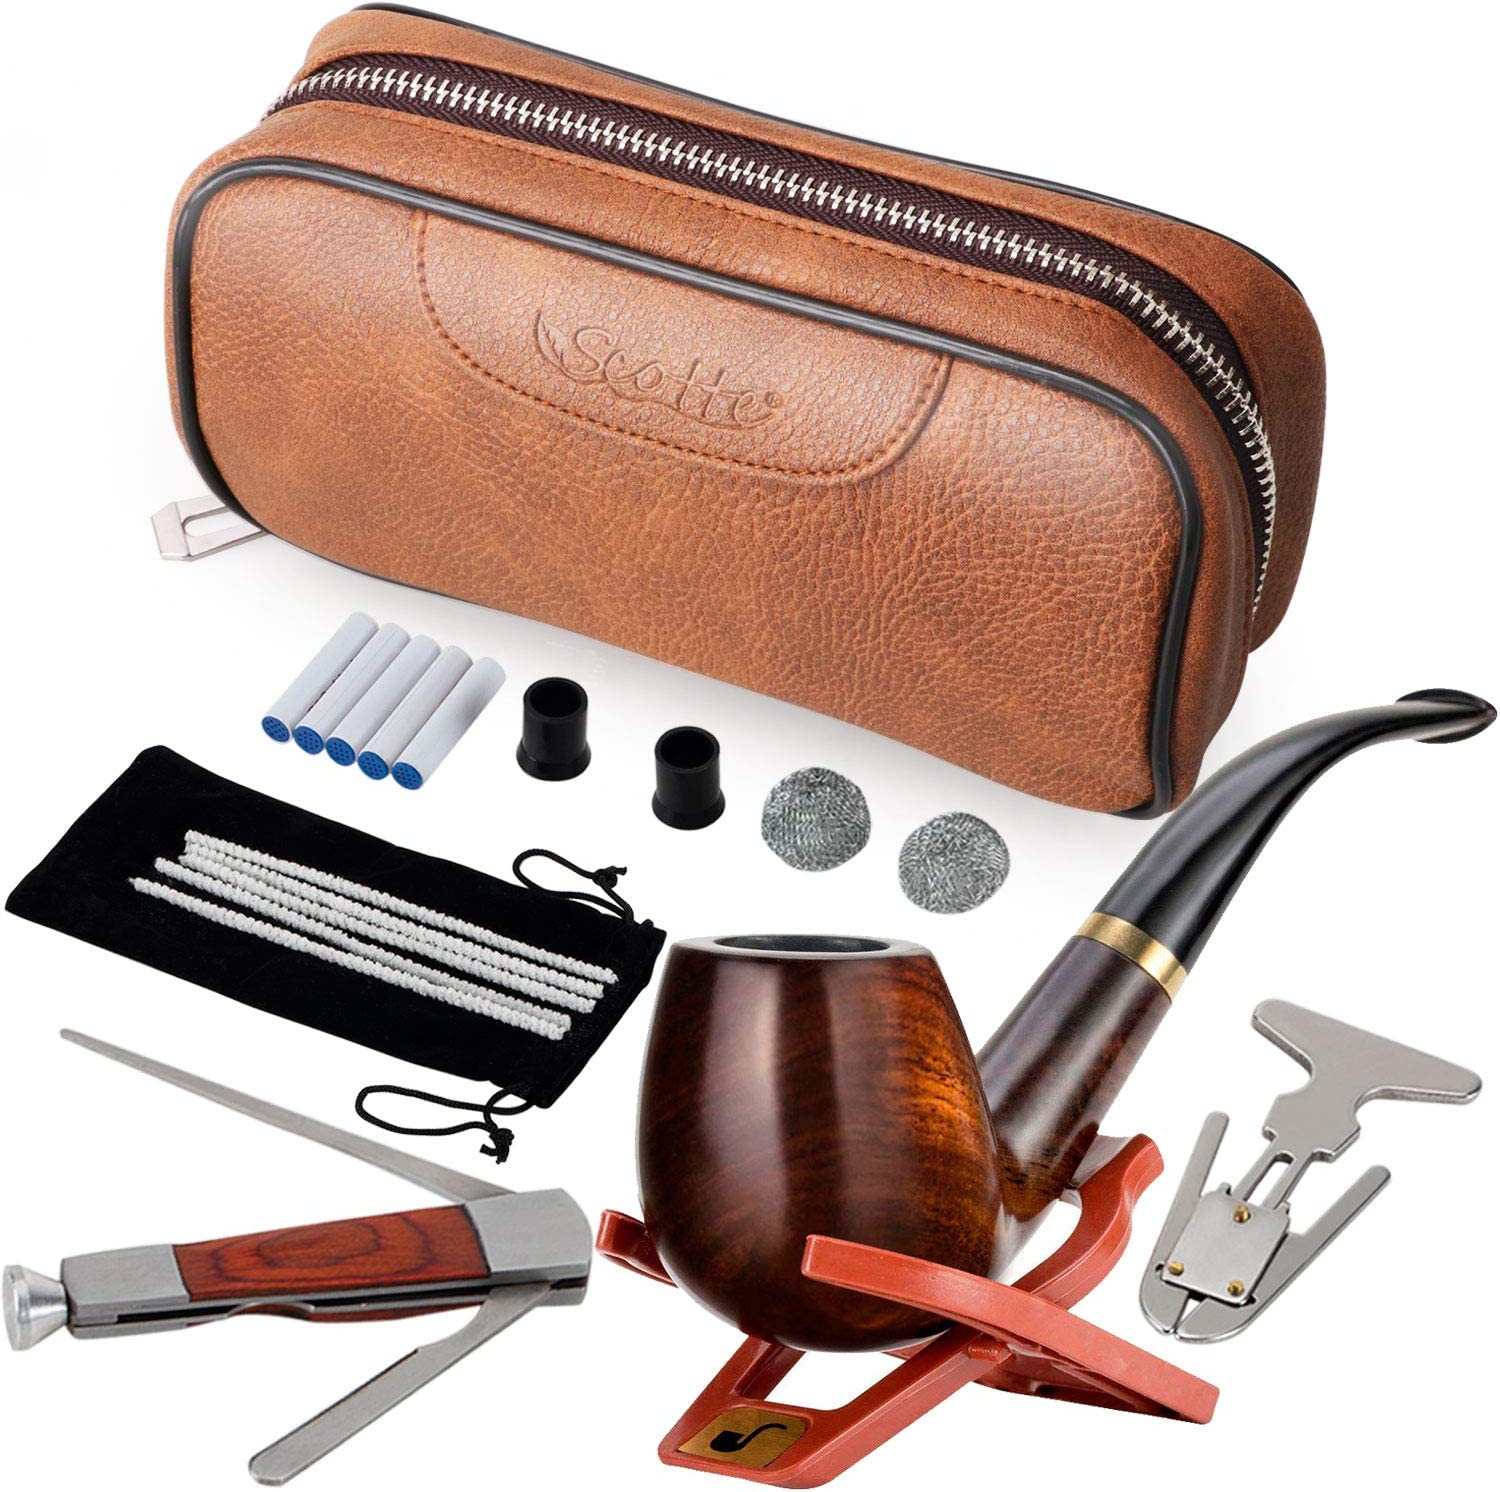 Max 43% OFF Scotte Tobacco Smoking Pipe Pouch favorite Leather Wood Pear